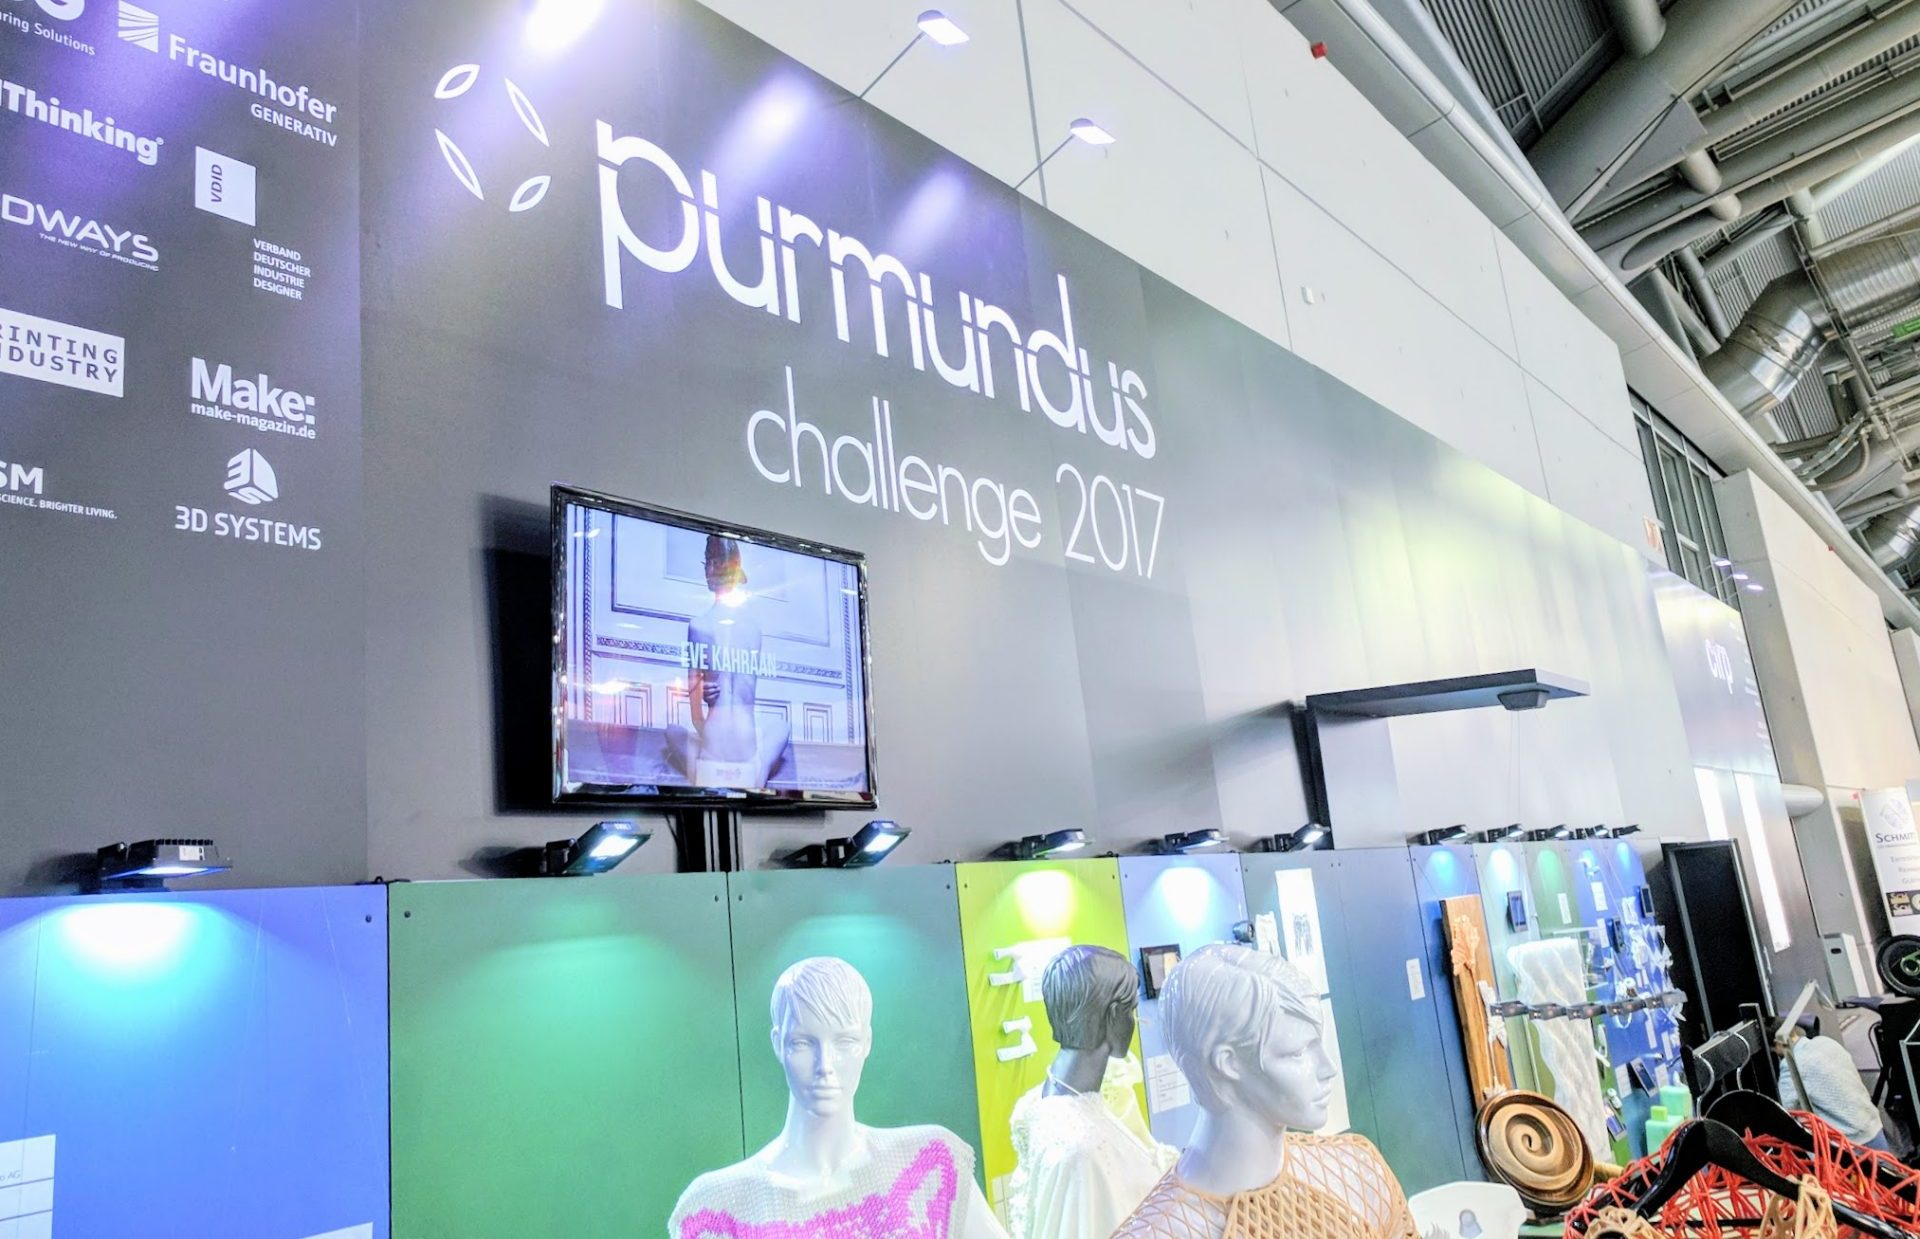 3D Printing Industry was one of several sponsors for the Purmundus Challenge 2017.